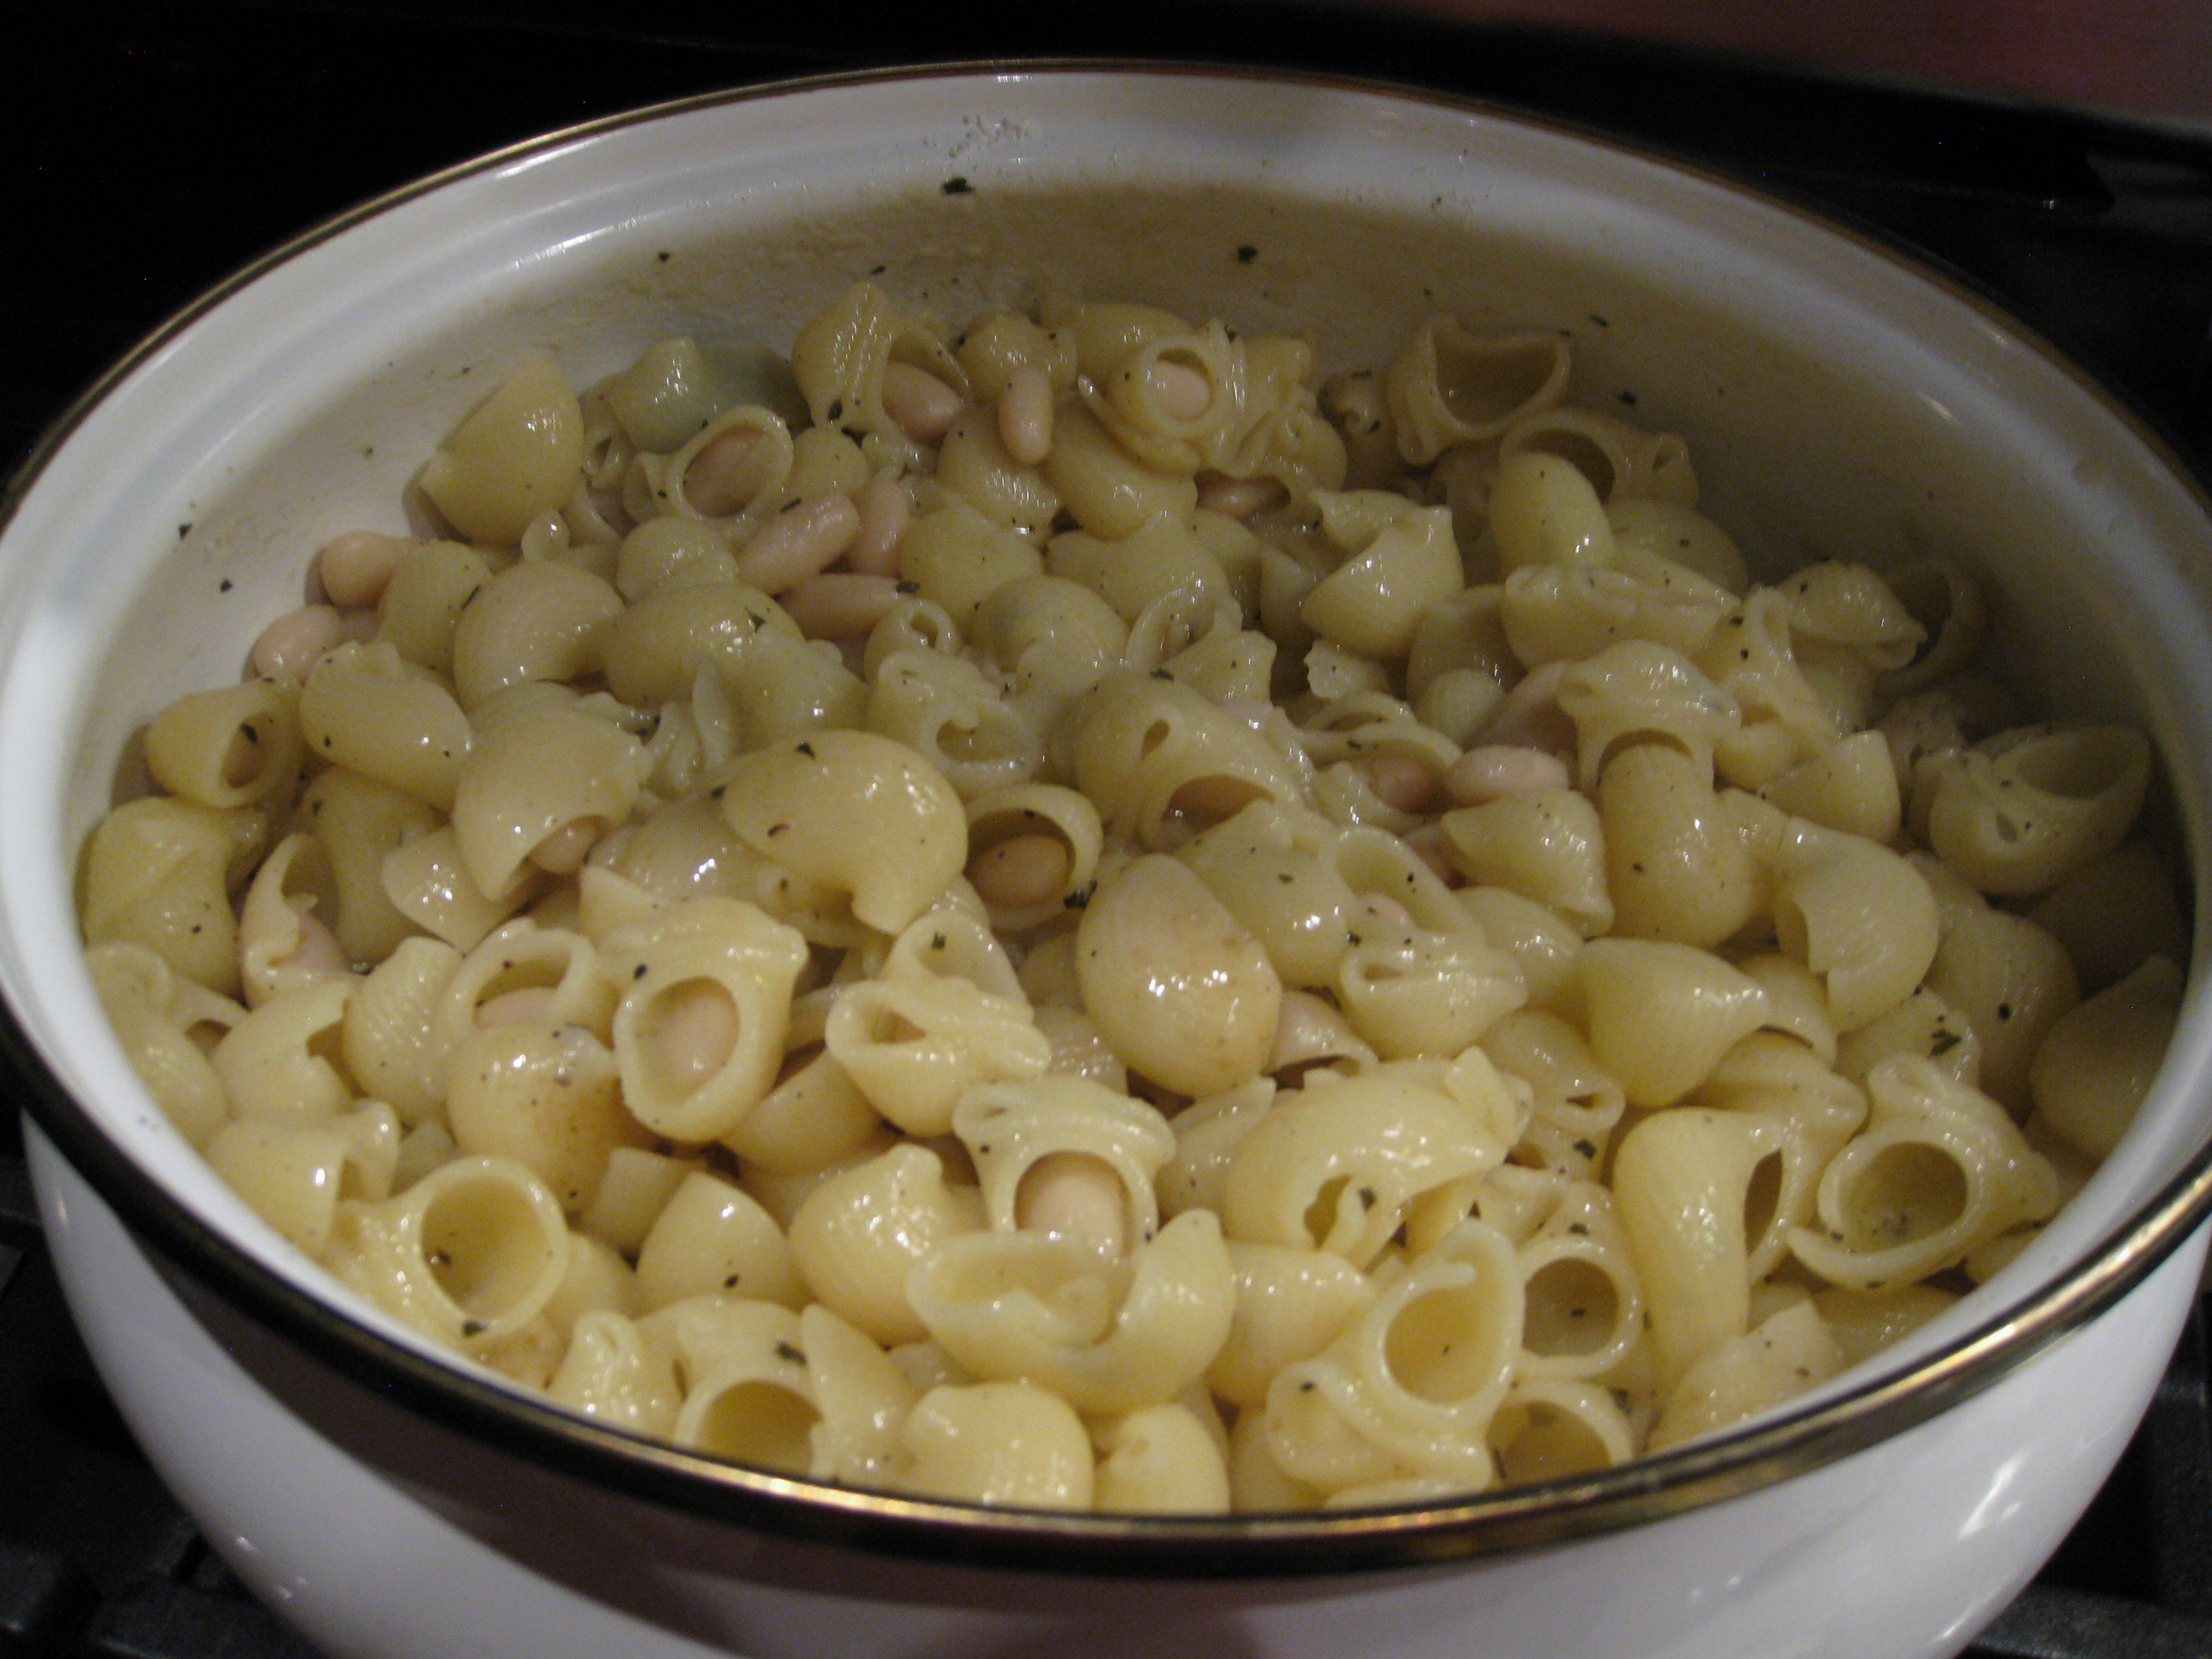 Forum on this topic: Pasta with Broccoli and Anchovies Recipe, pasta-with-broccoli-and-anchovies-recipe/